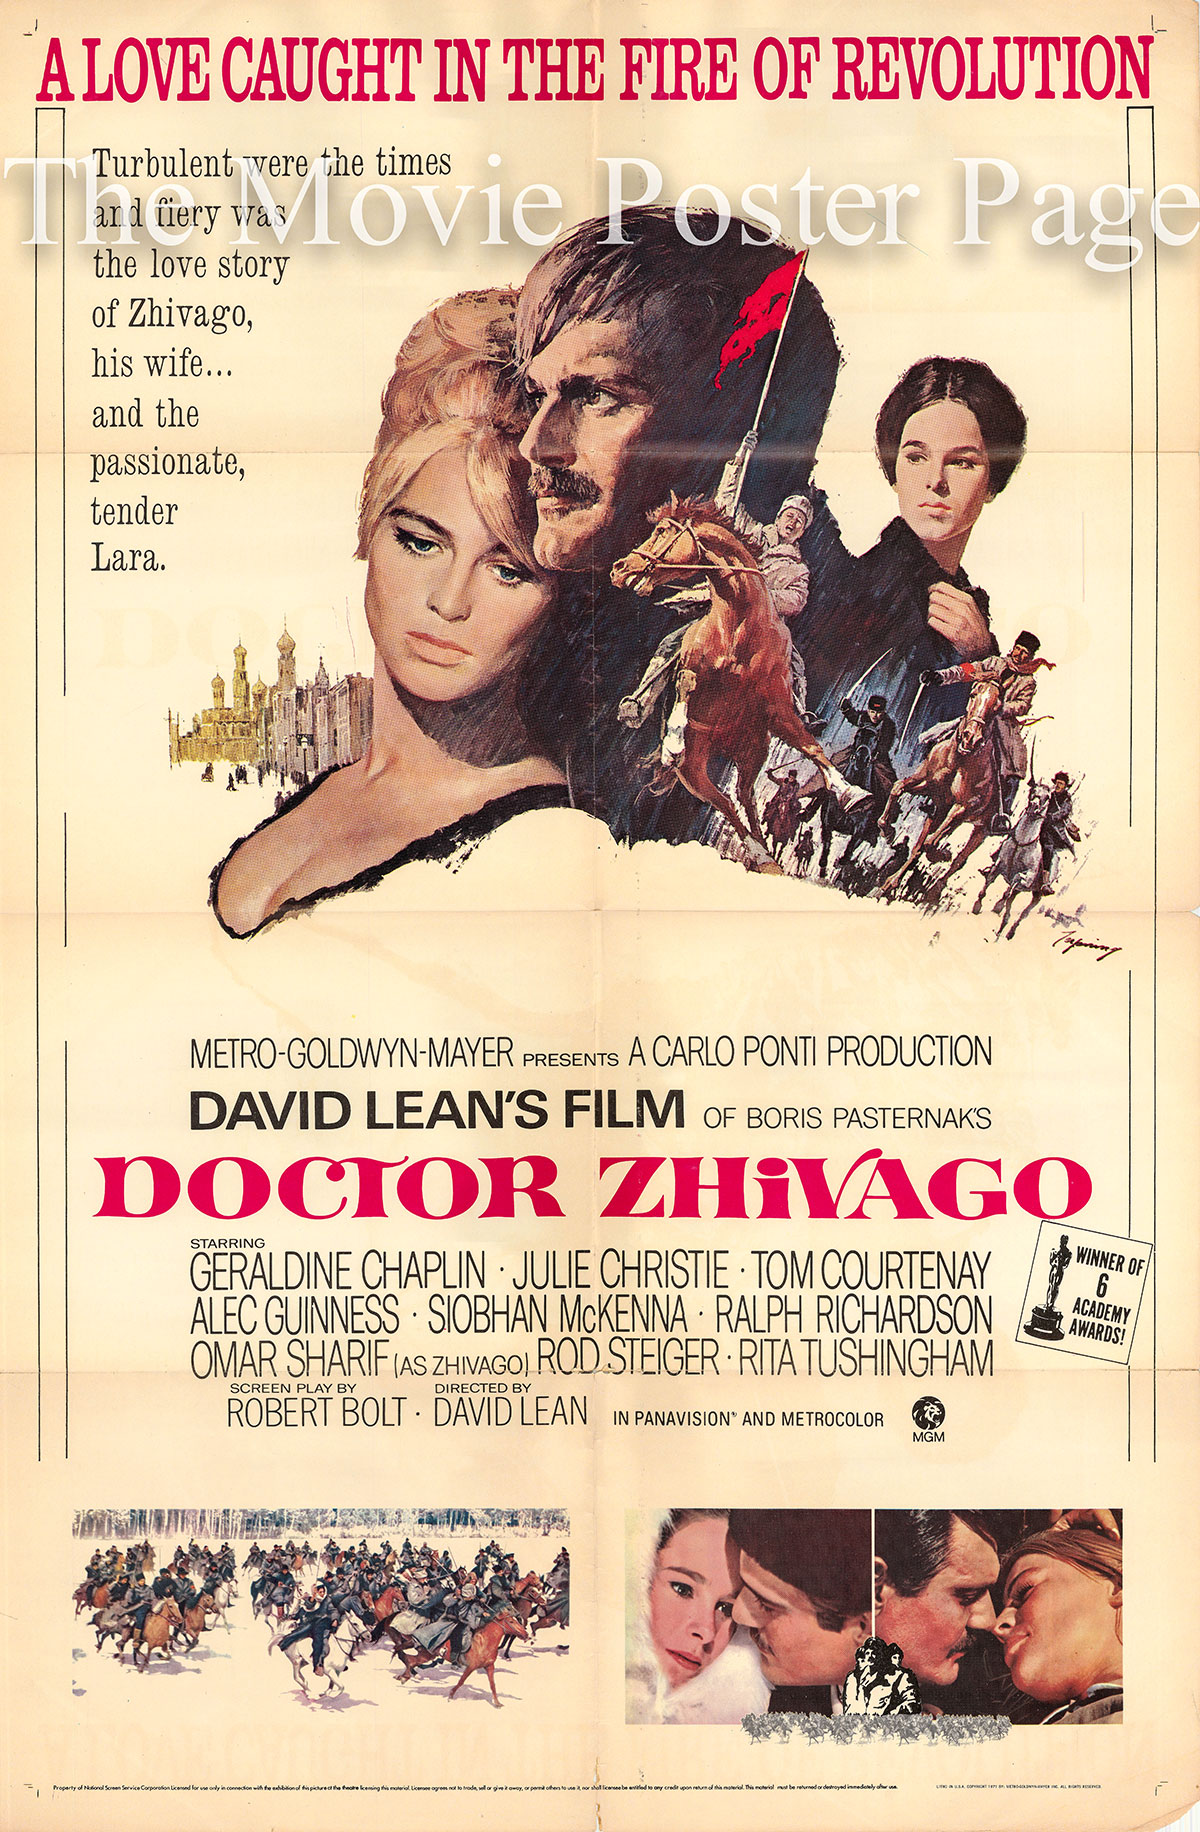 Pictured is a US one-sheet promotional poster for the 1971 rerelease of the 1965 David Lean film Doctor Zhivago starring Omar Sharif.